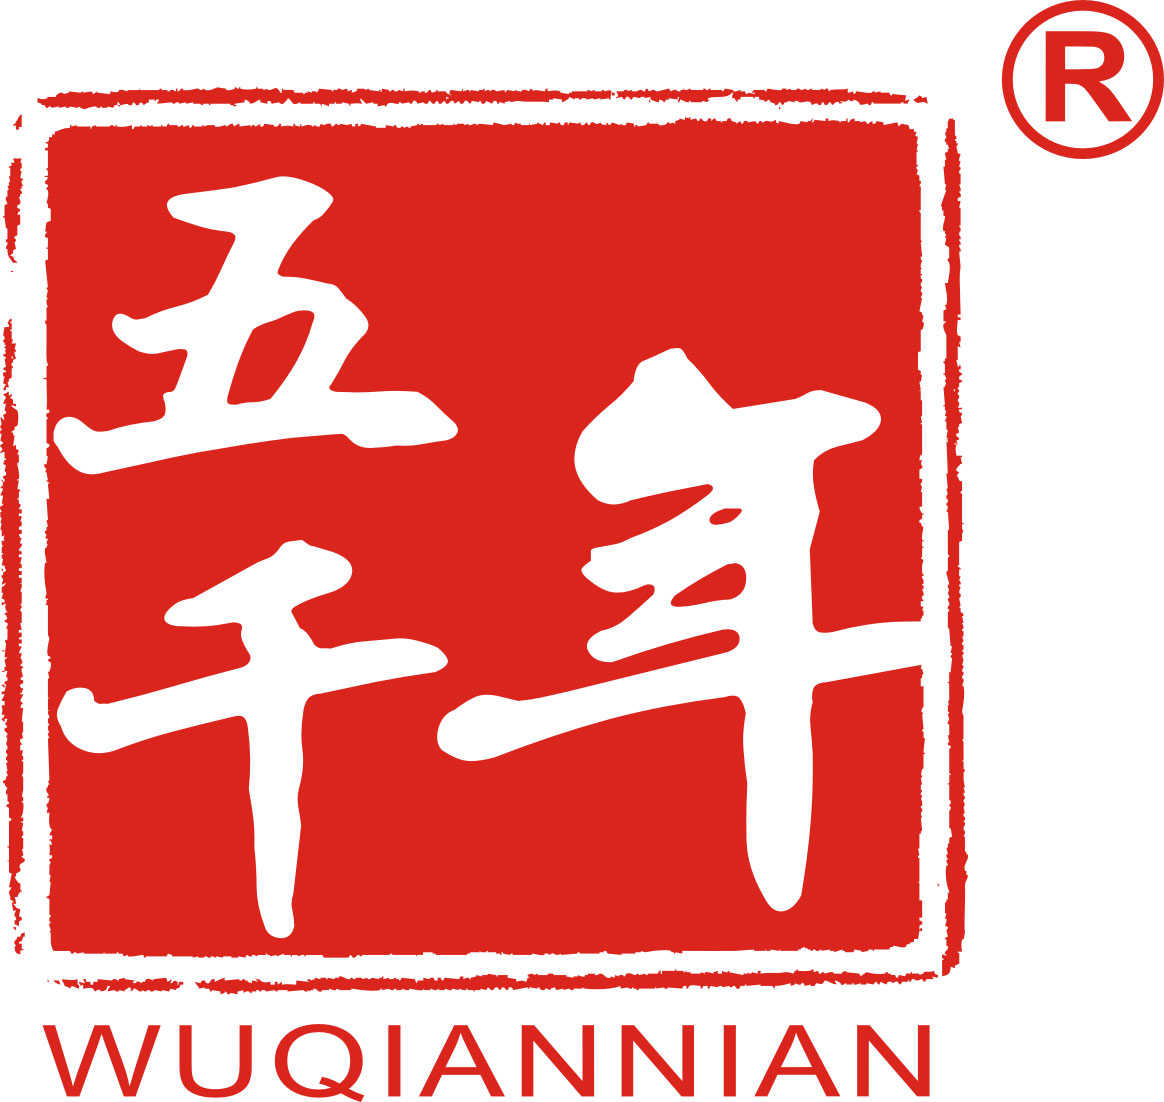 GUANGDONG WUQIANNIAN STATIONERY INDUSTRIAL CO.,LTD.